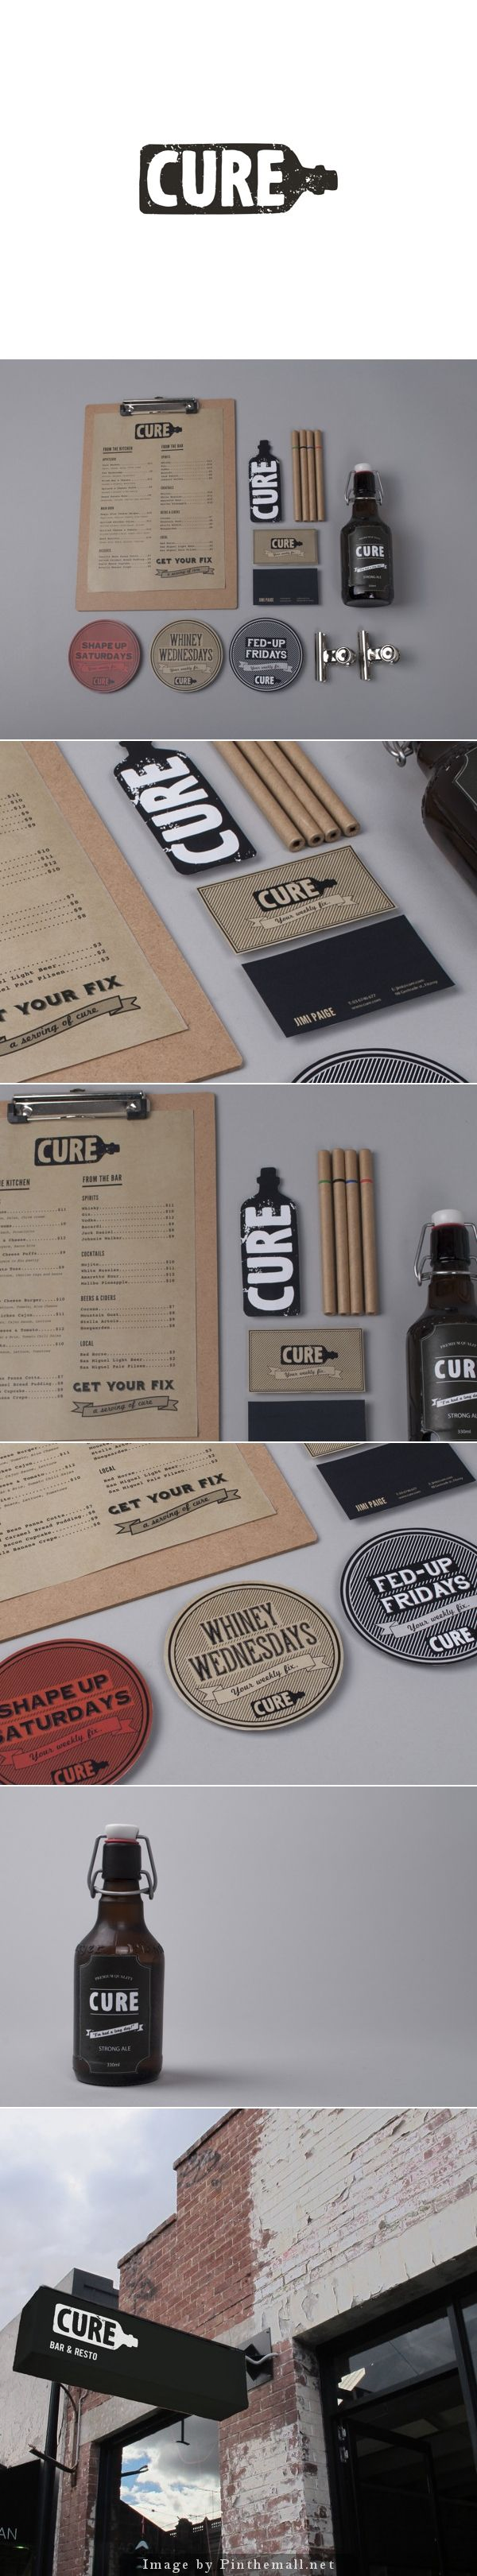 Cure restaurant and bar branding by Bae de Jesus. - created via http://pinthemall.net